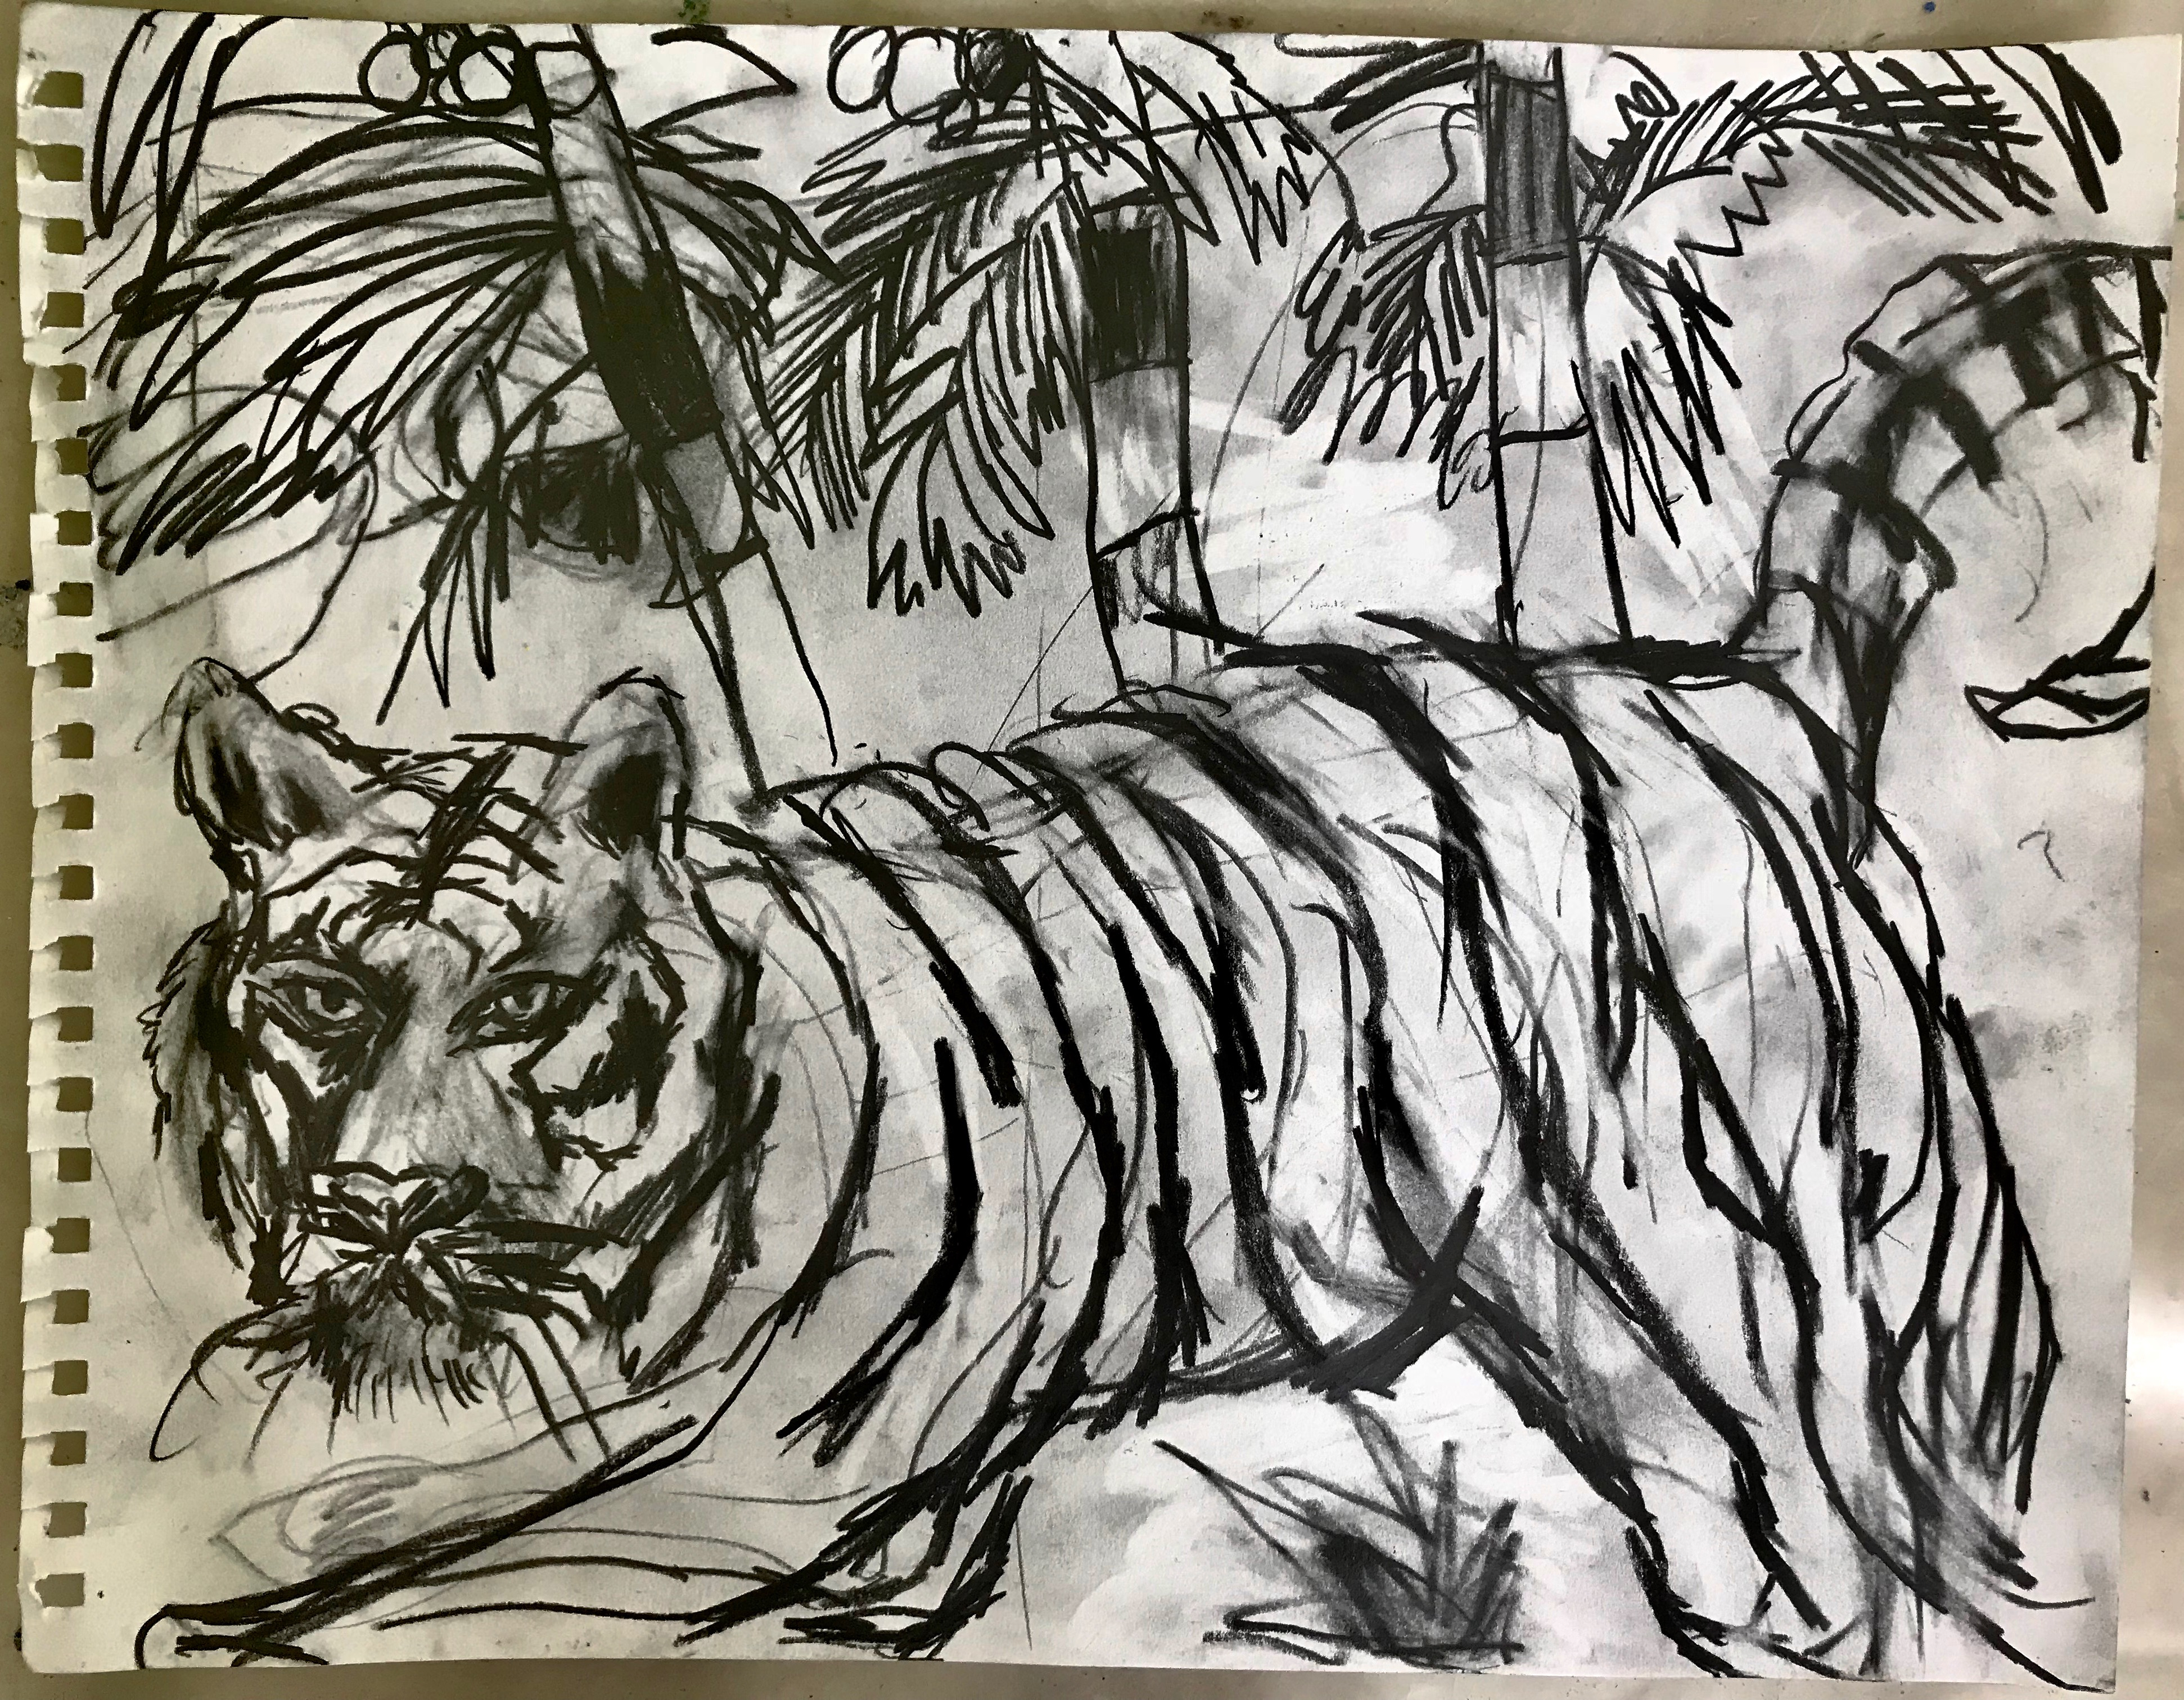 Tiger with palms. Sketchbook series. 2018